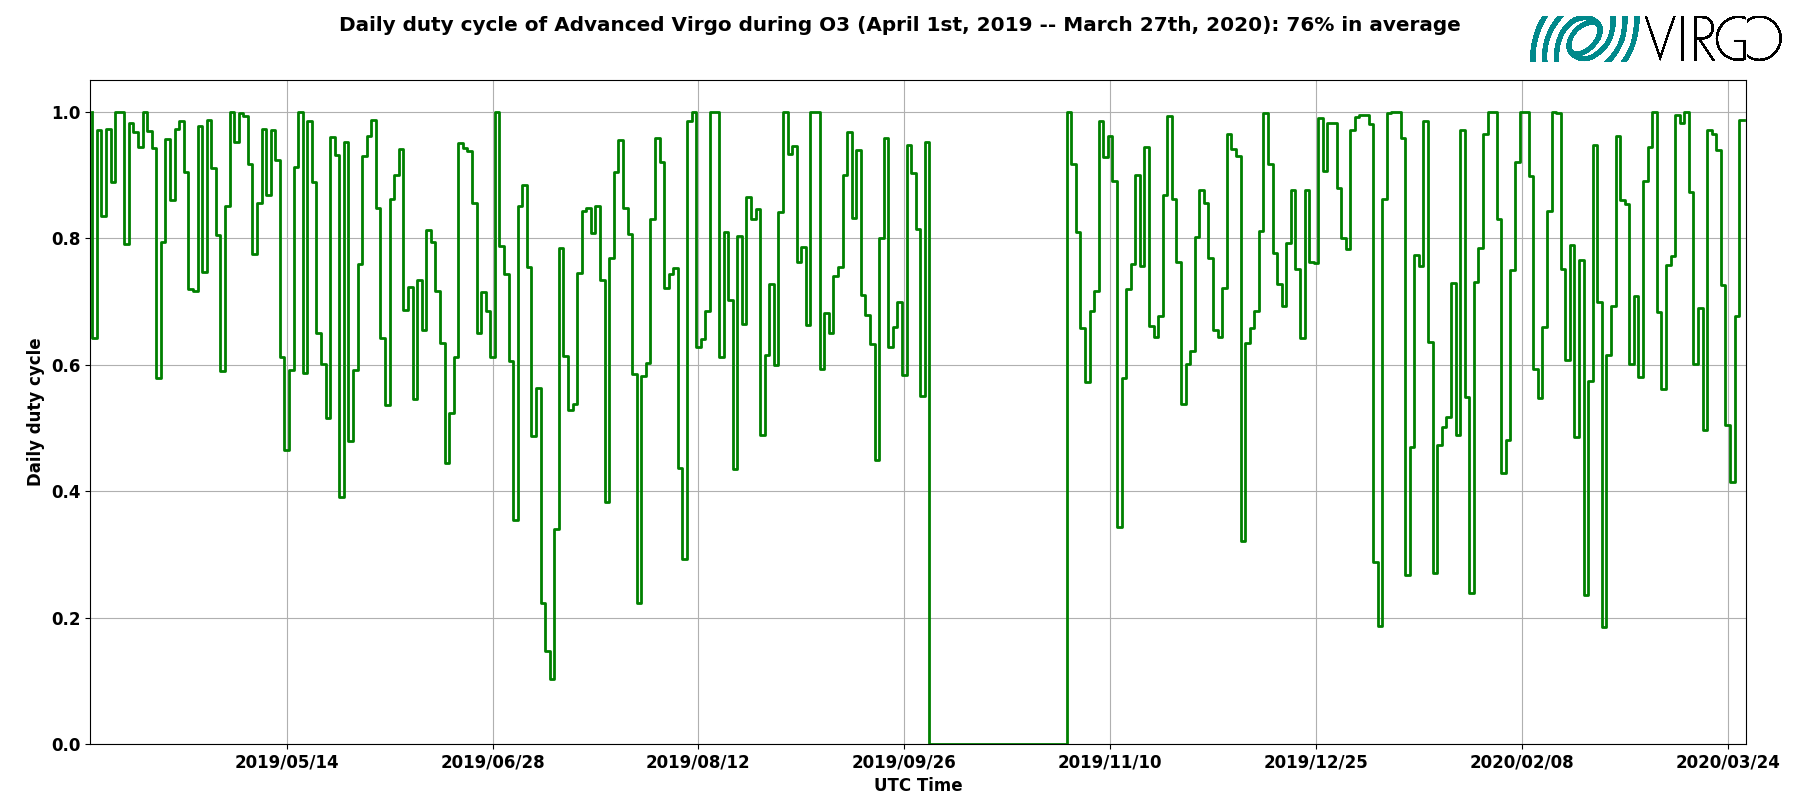 Daily duty cycle of Advanced Virgo during O3